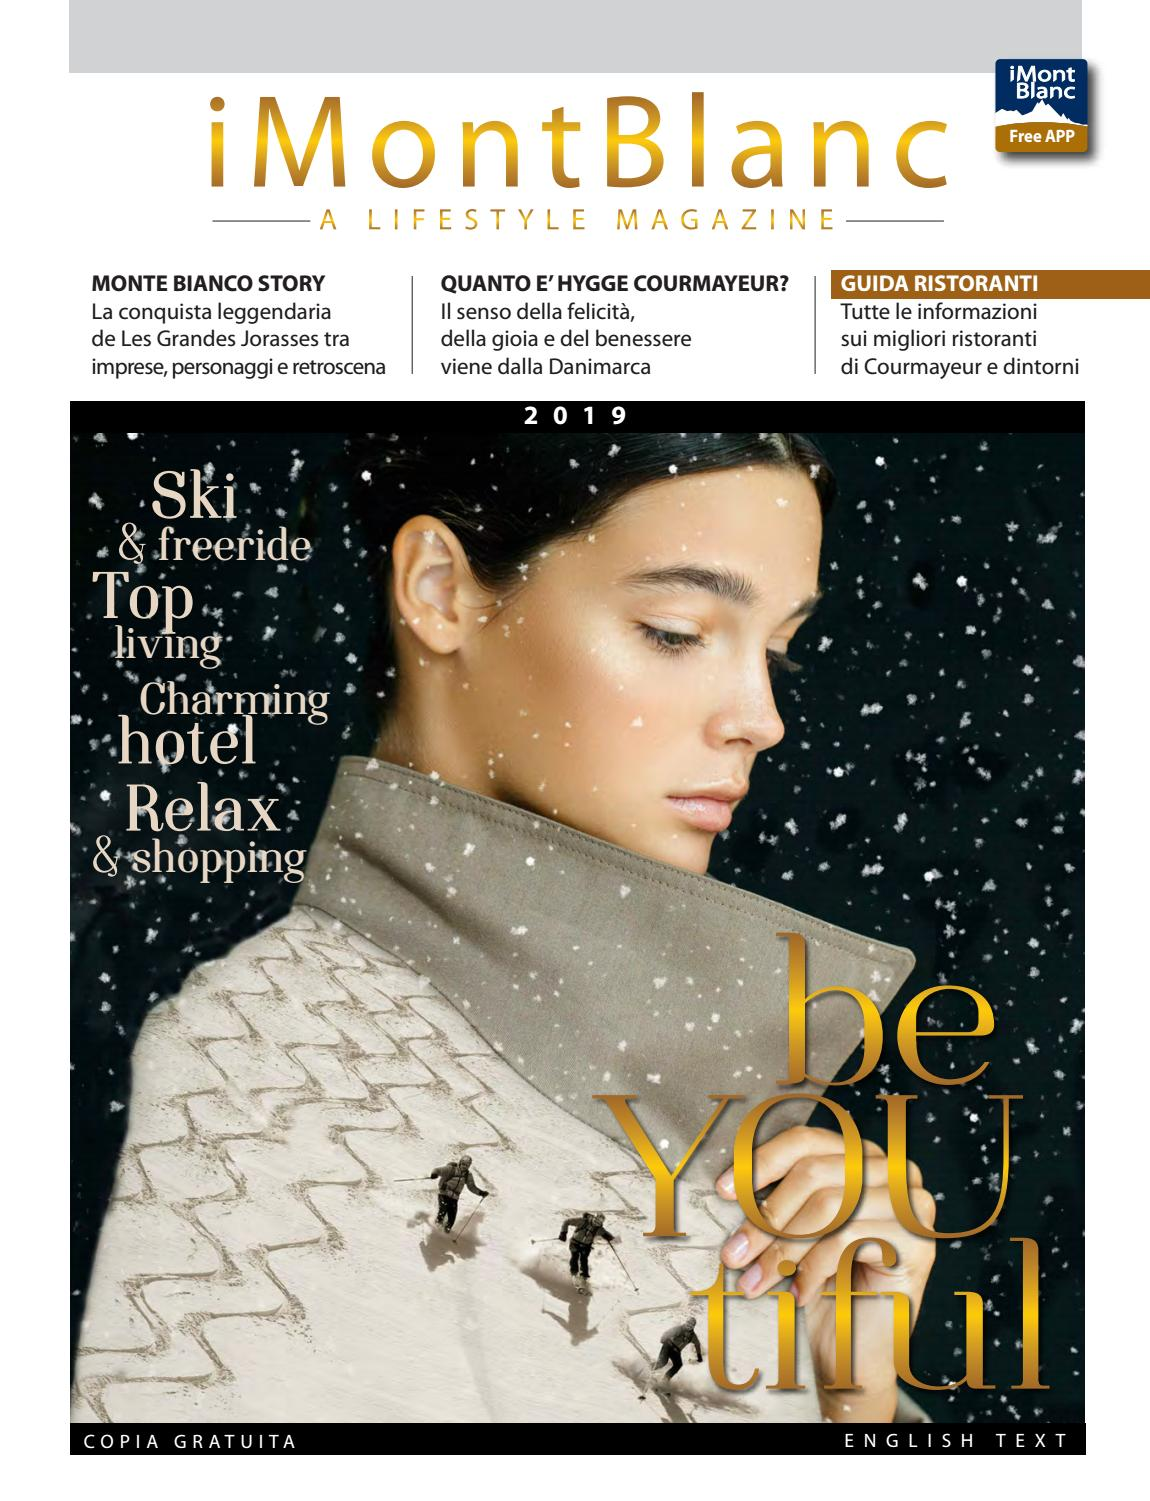 iMontBlanc MAGAZINE Winter 2018 19 - Courmayeur by Gianluca Martinelli -  issuu 0e1848ee5279